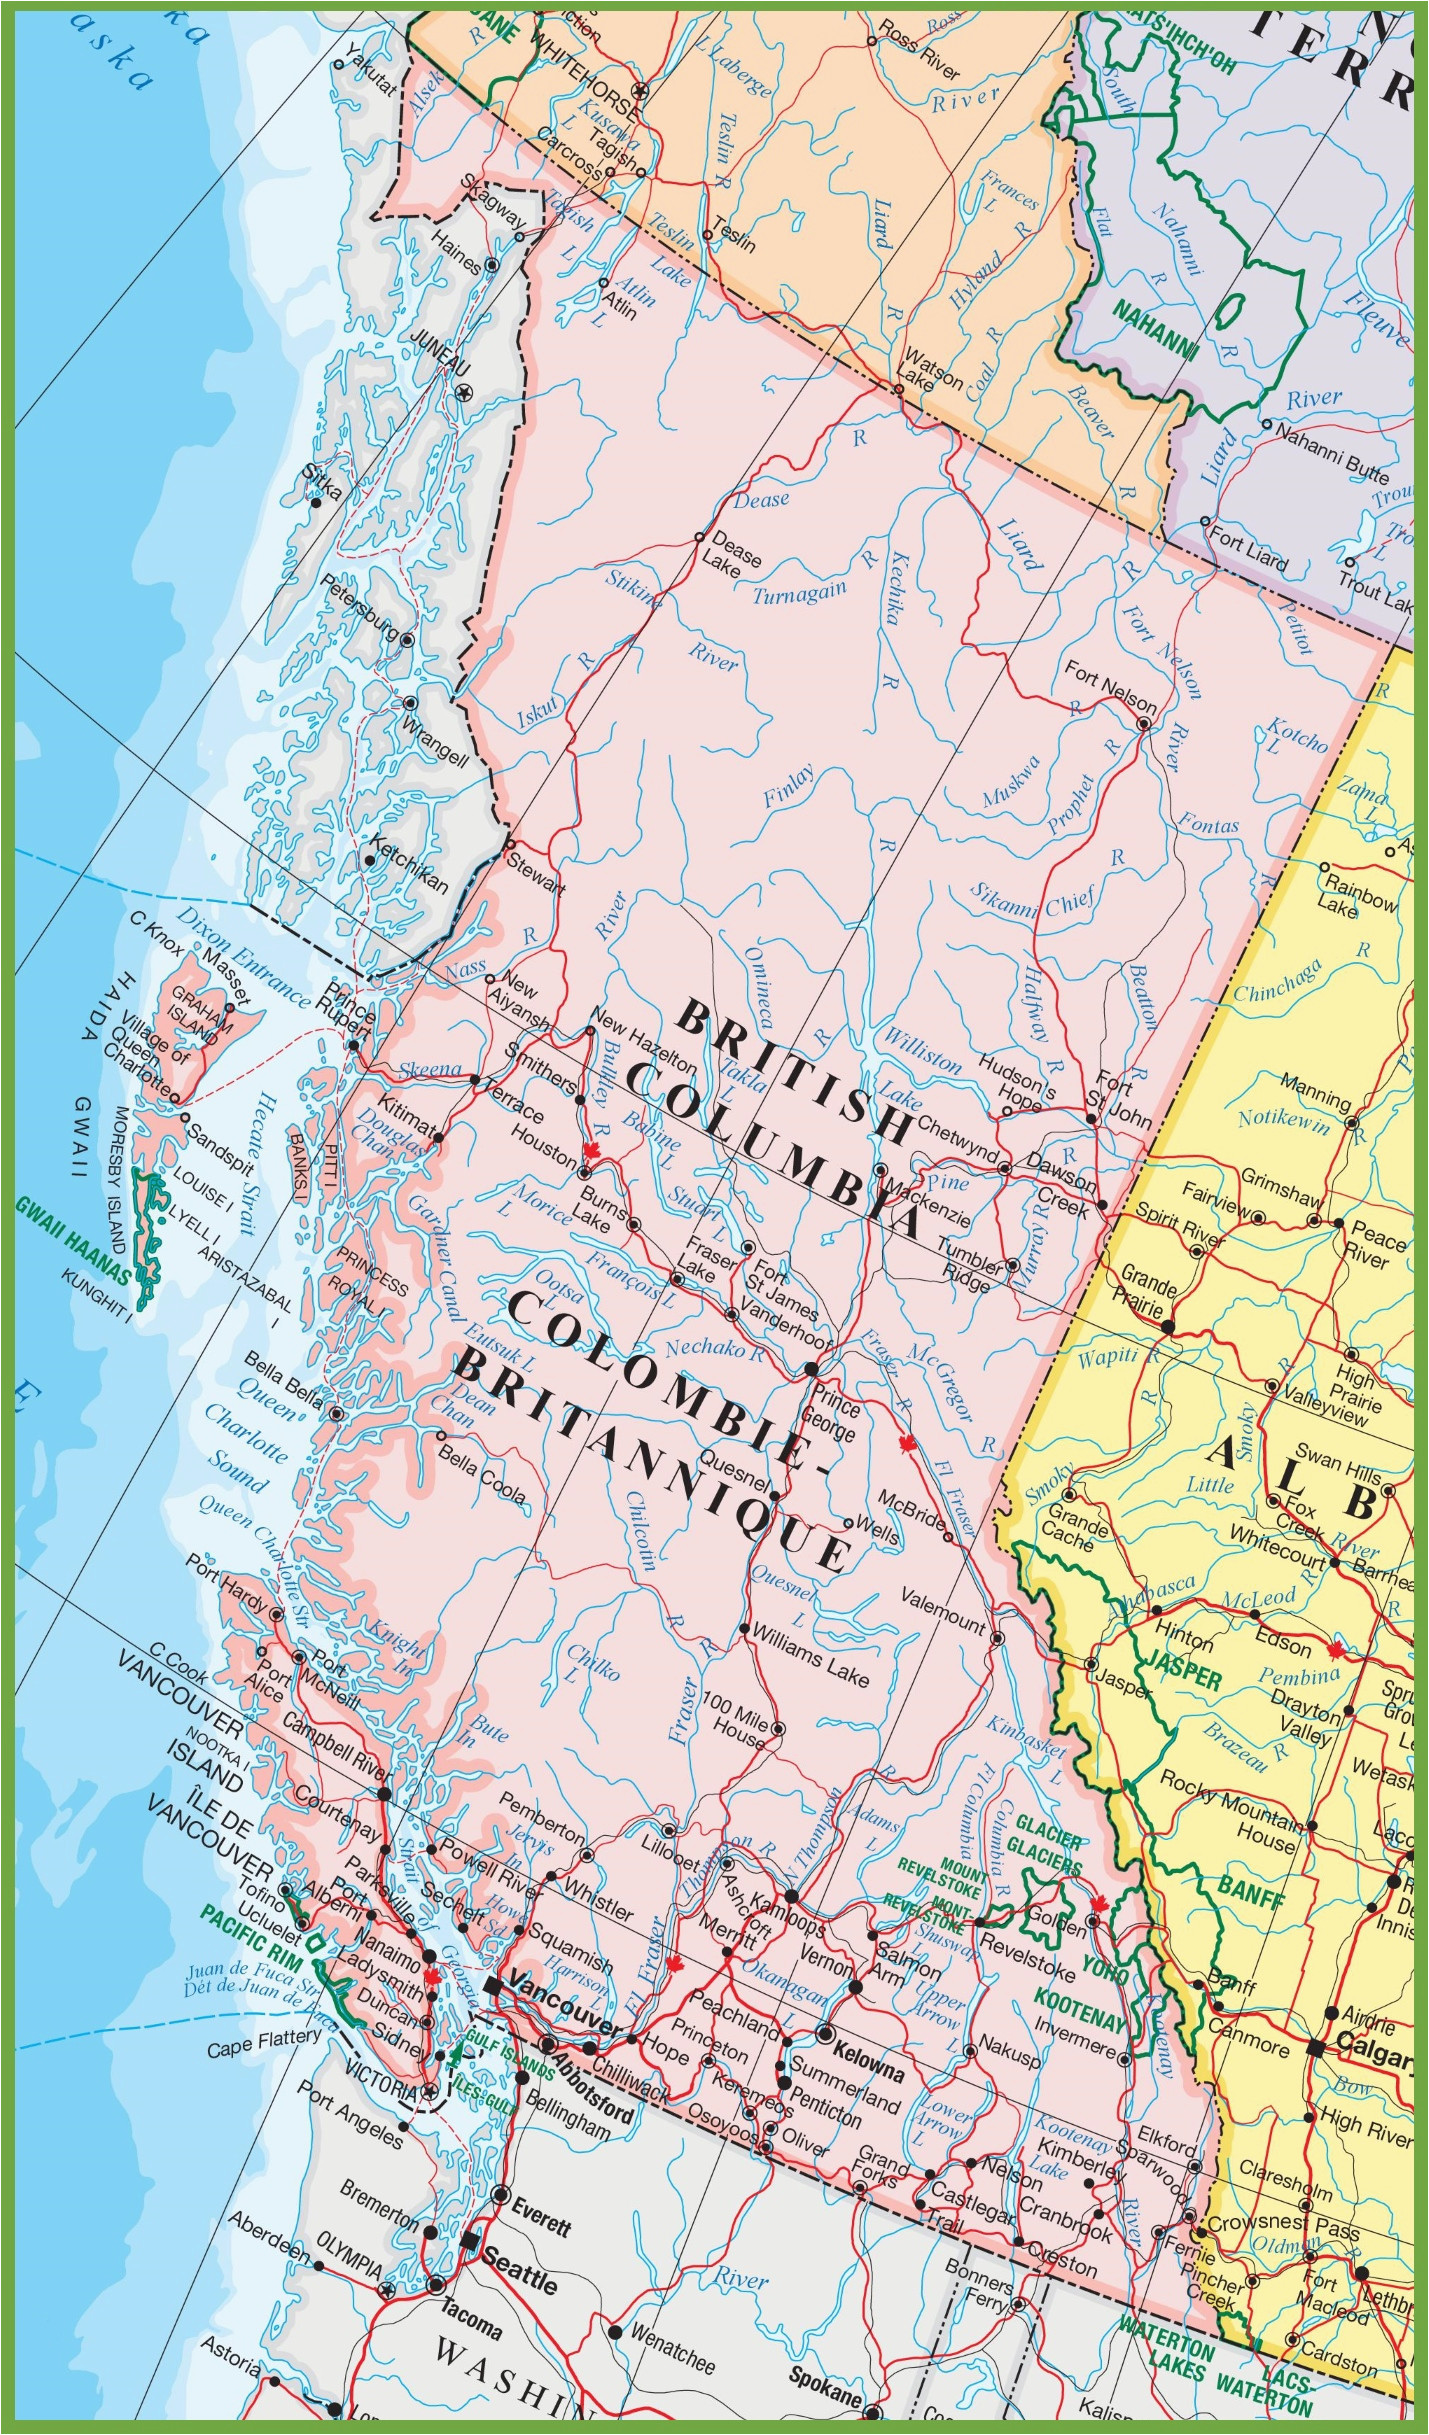 Map Of Bc Canada Detailed Large Detailed Map Of British Columbia with Cities and towns